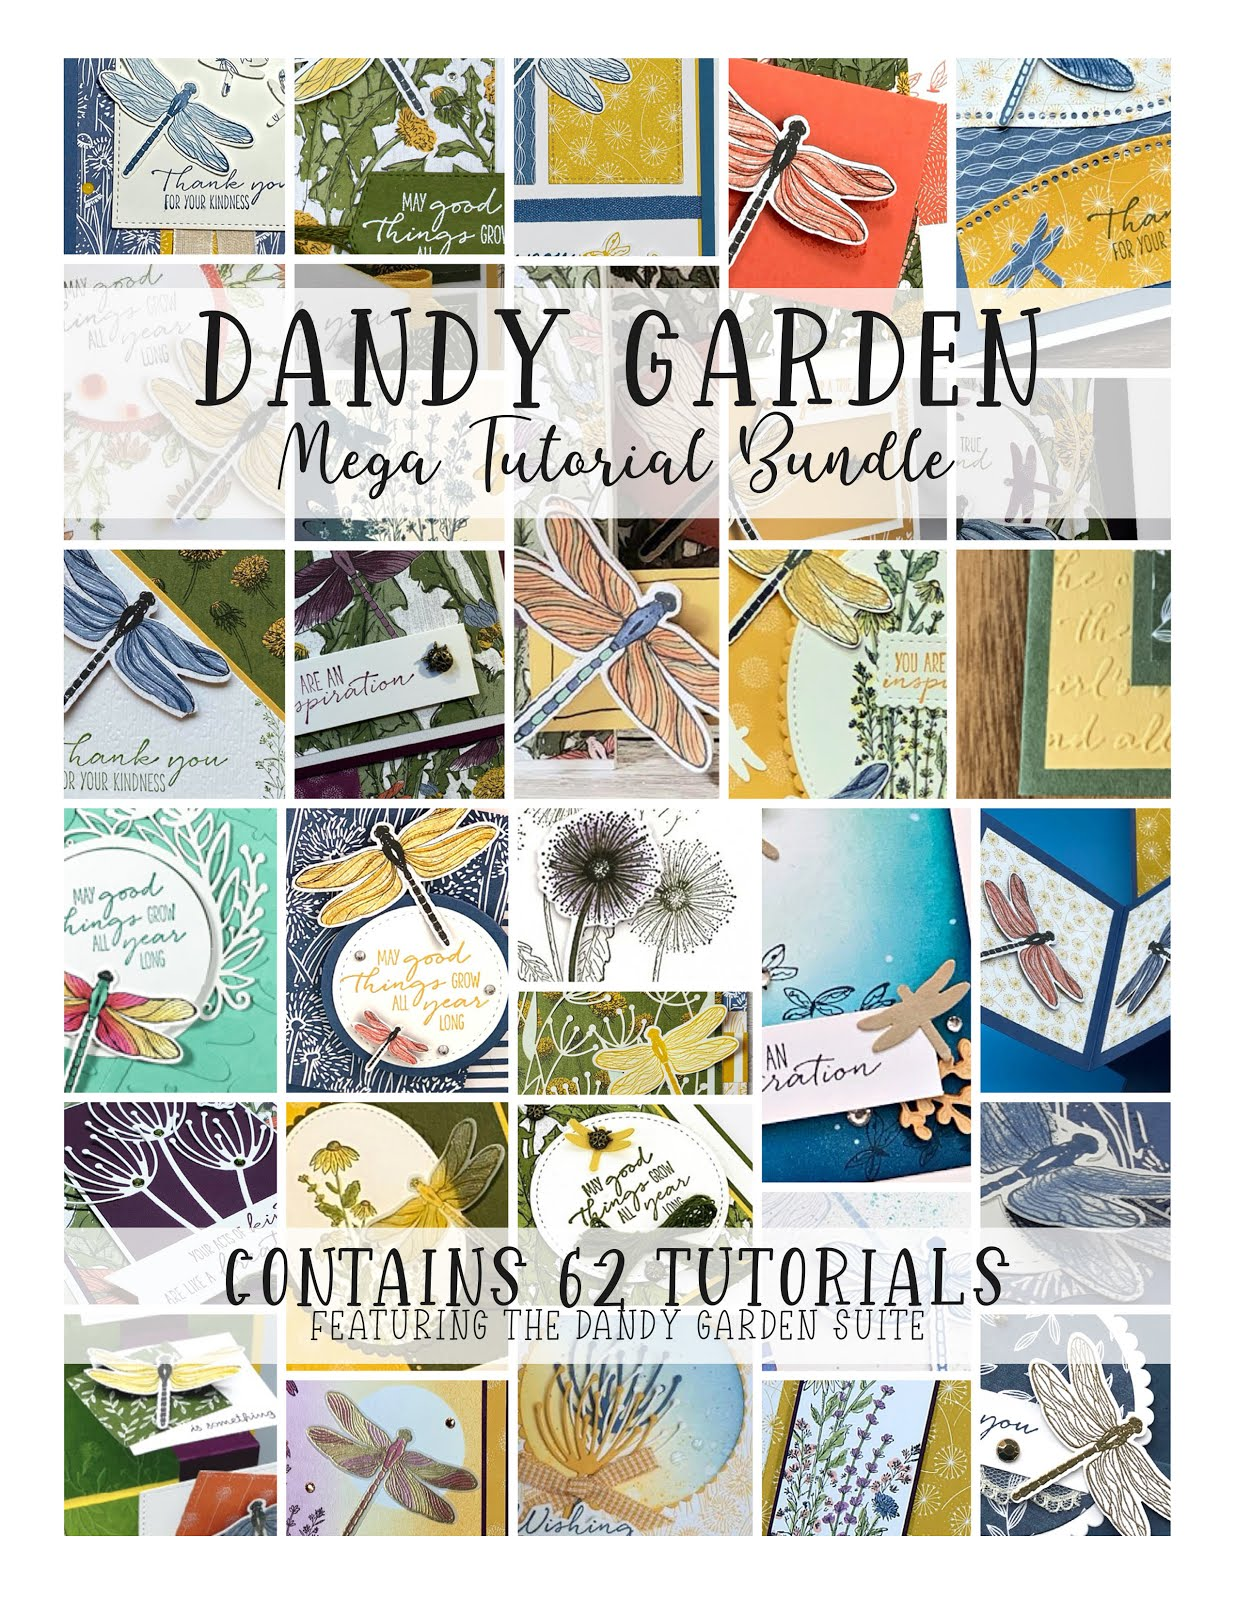 Dandy Garden Mega Tutorial Bundle